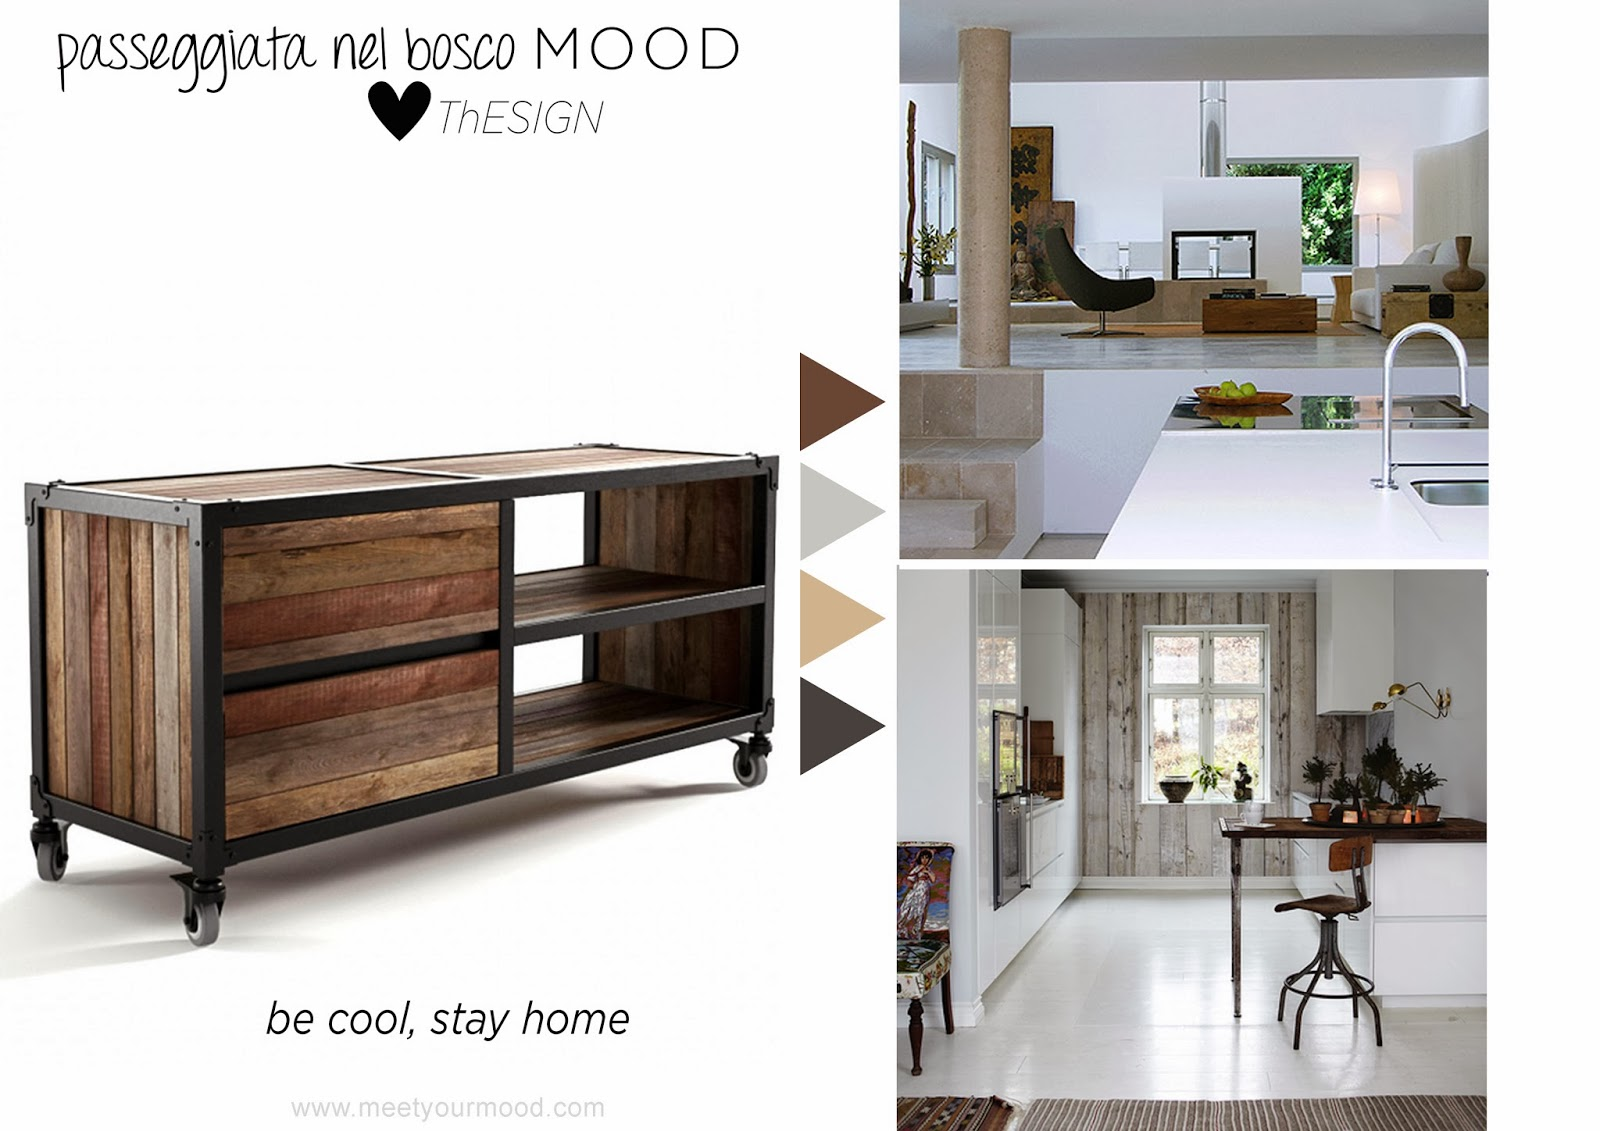 Lovethesign mood madie e mobili contenitore meetyourmood for Madie design online